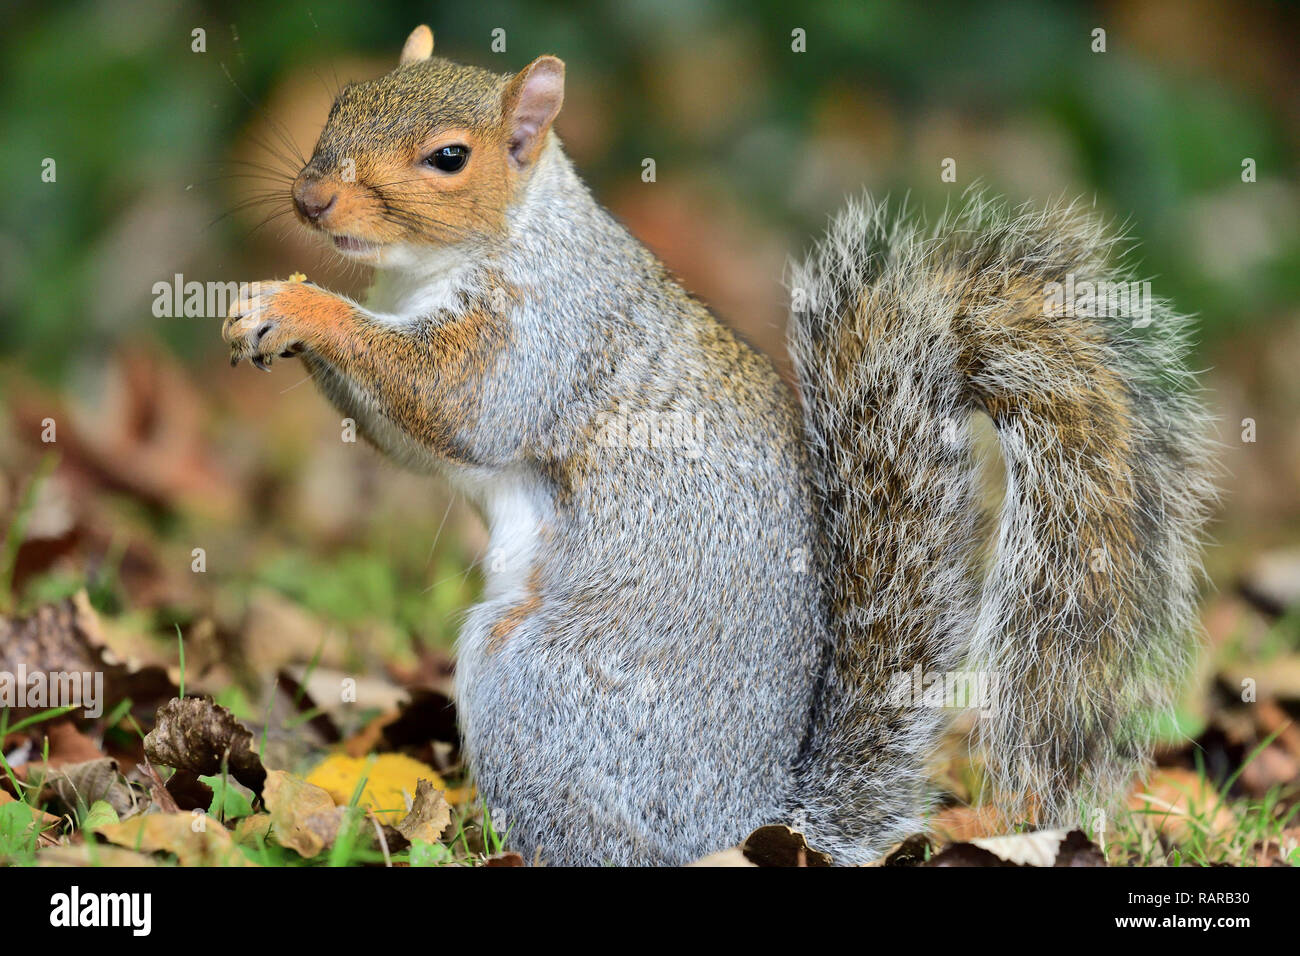 Side view of an eastern grey squirrel (sciurus caroinensis) eating a nut - Stock Image